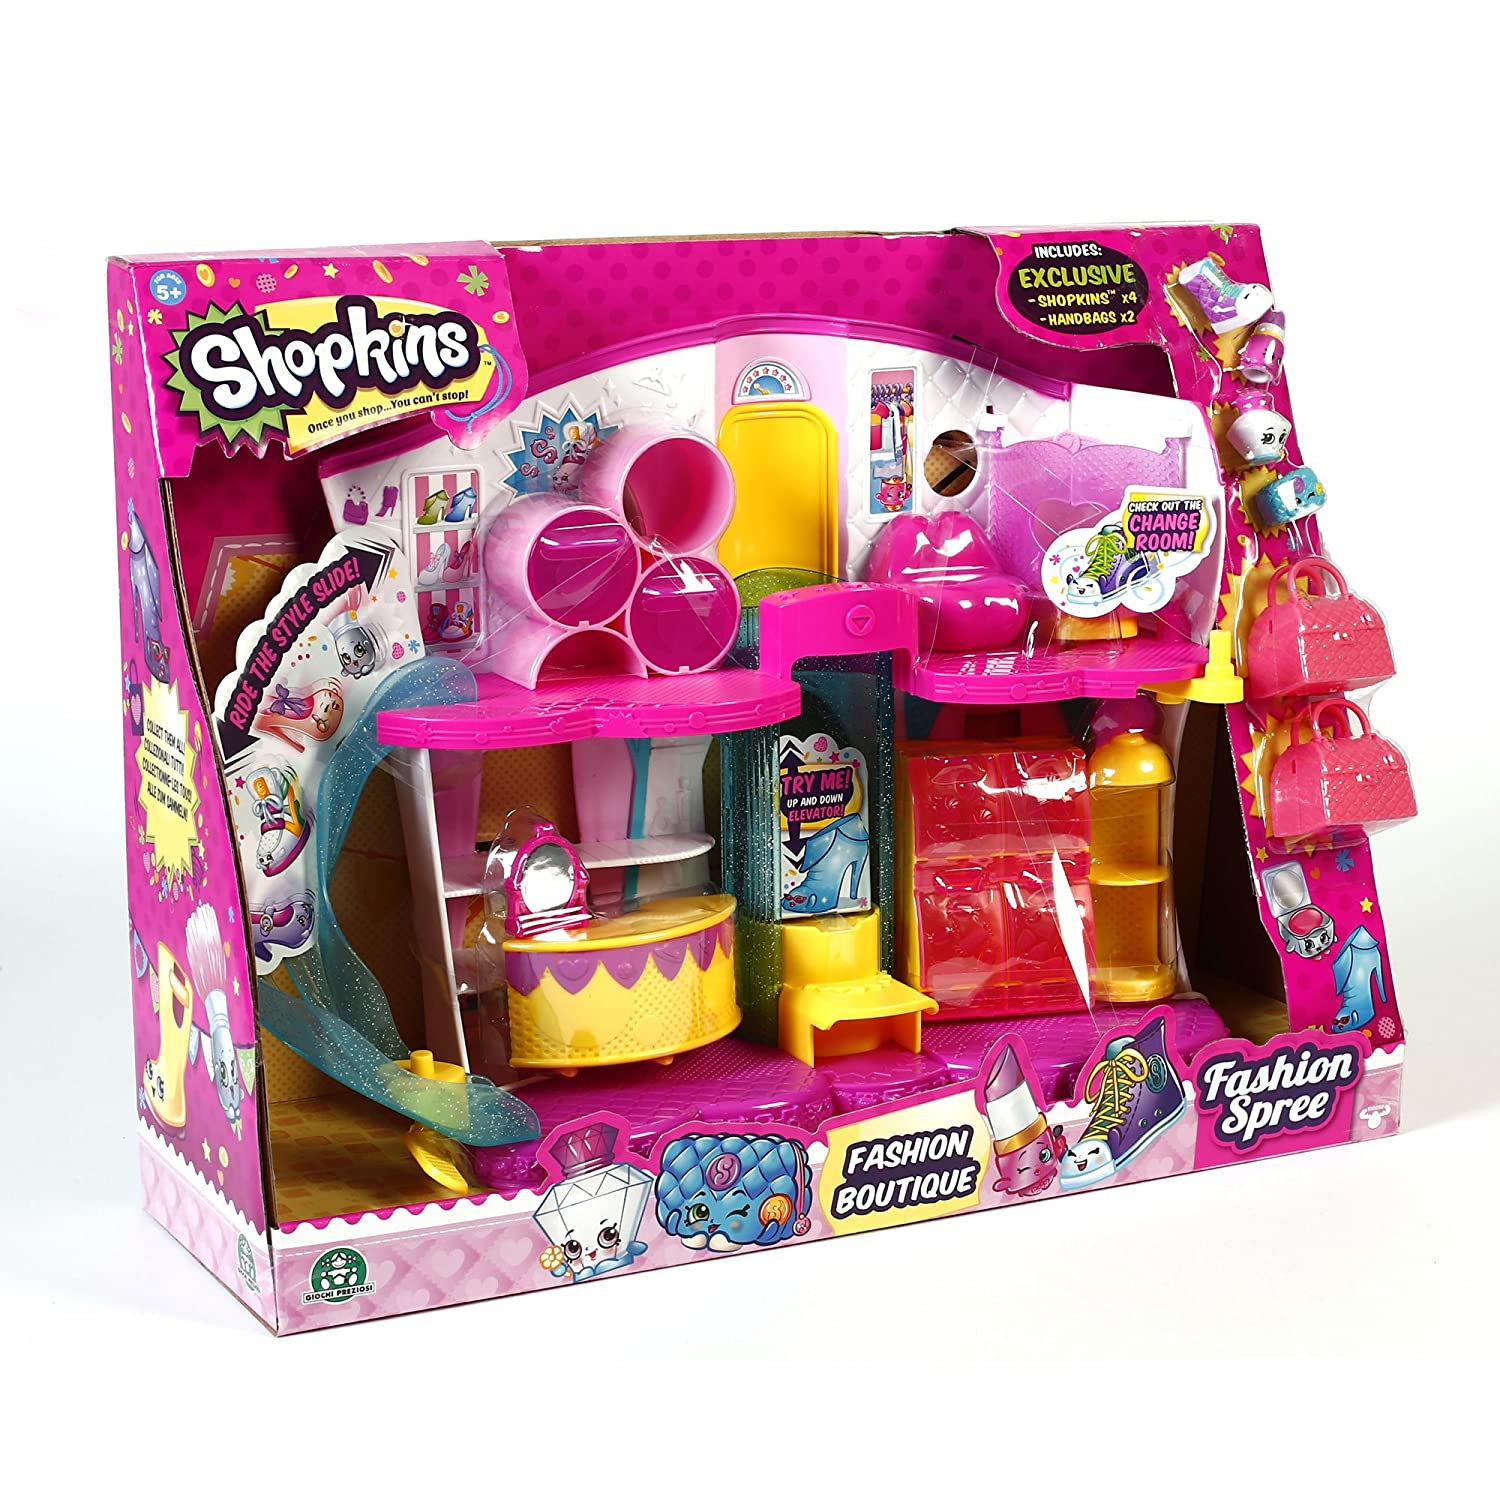 Shopkins Fashion Boutique Playset Review